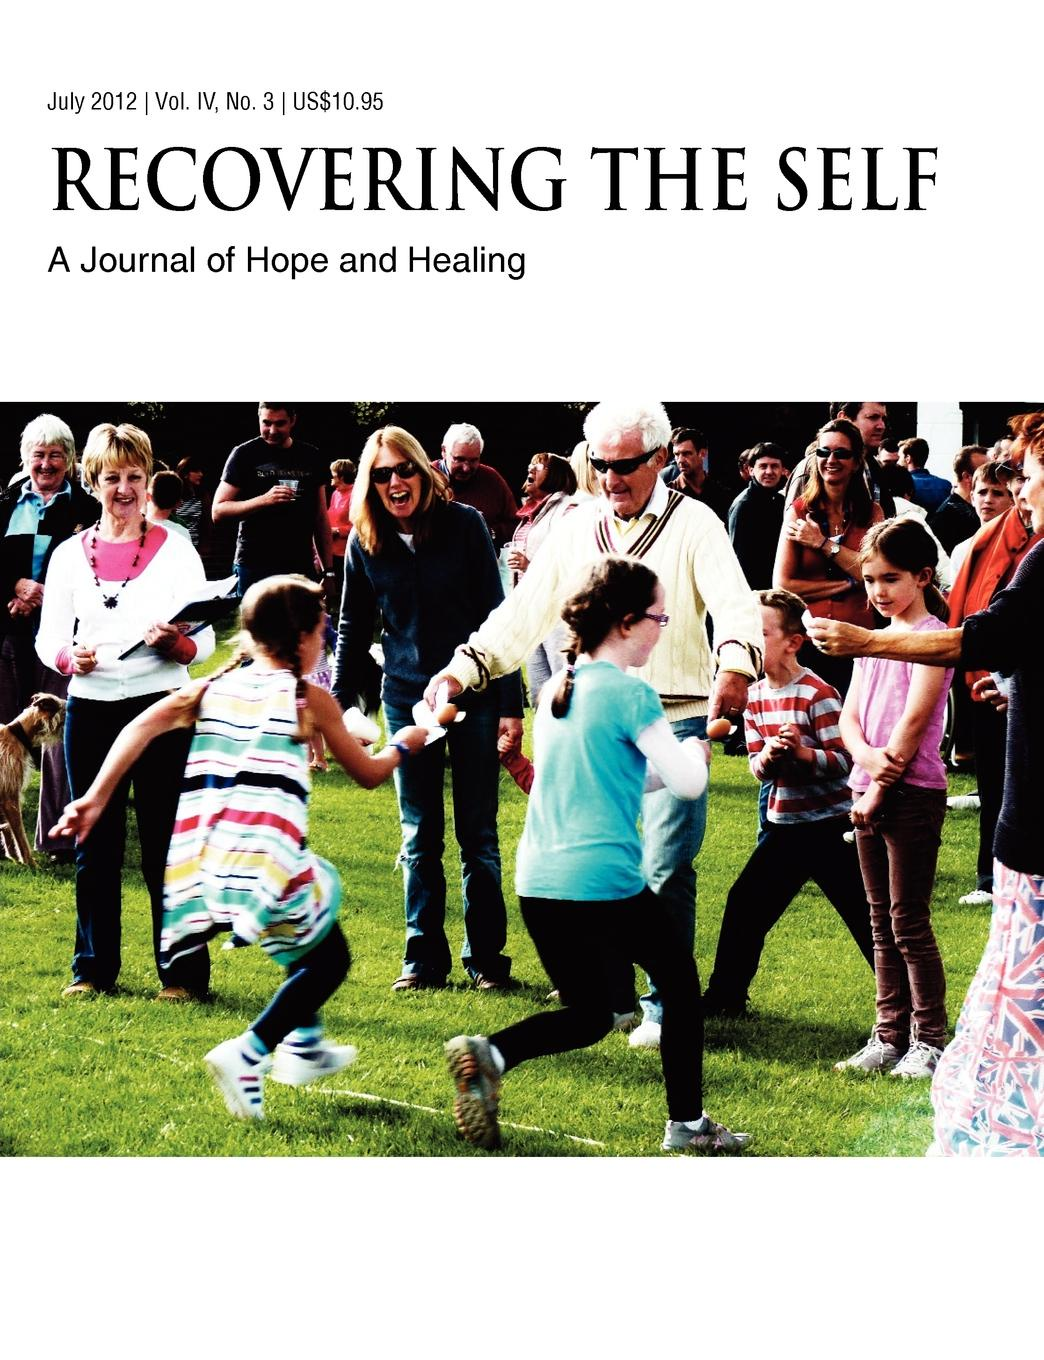 Trisha Faye Recovering The Self. A Journal of Hope and Healing (Vol. IV, No. 3) -- Aging and the Elderly recovering the self